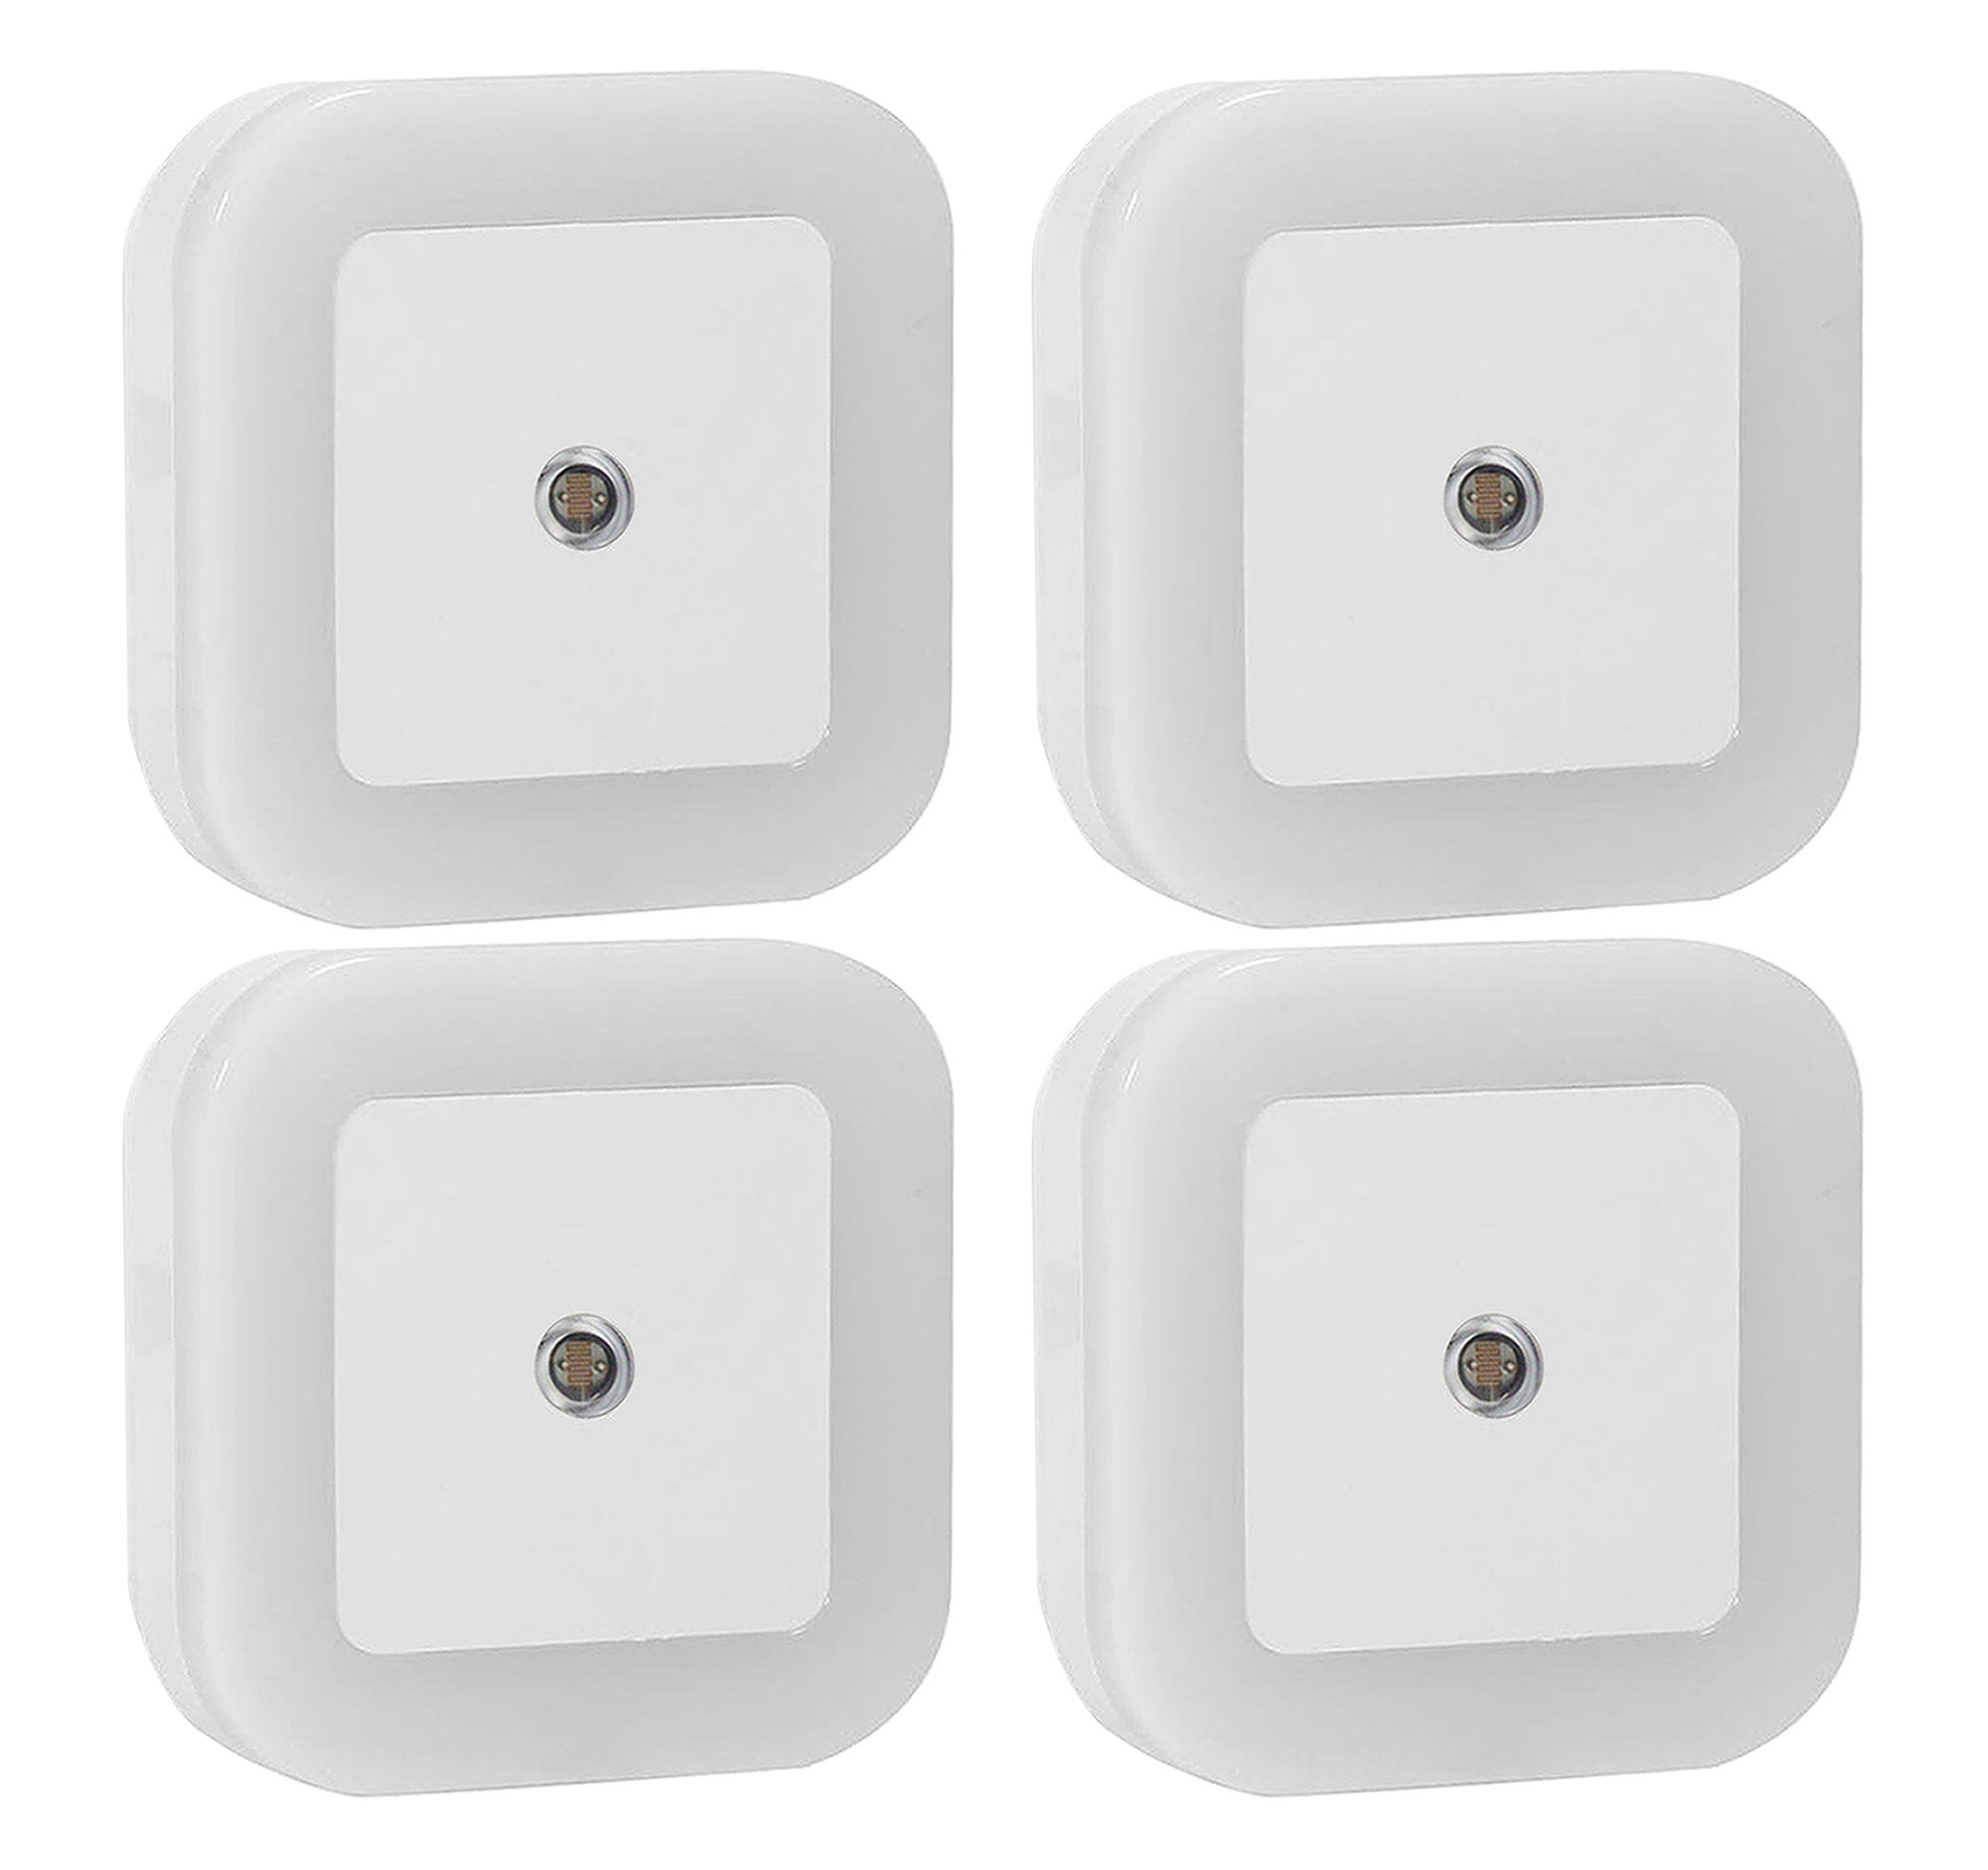 Galleon - Sycees 0.5W Plug-in LED Night Light Lamp With Dusk To Dawn Sensor, Daylight White, 4-Pack